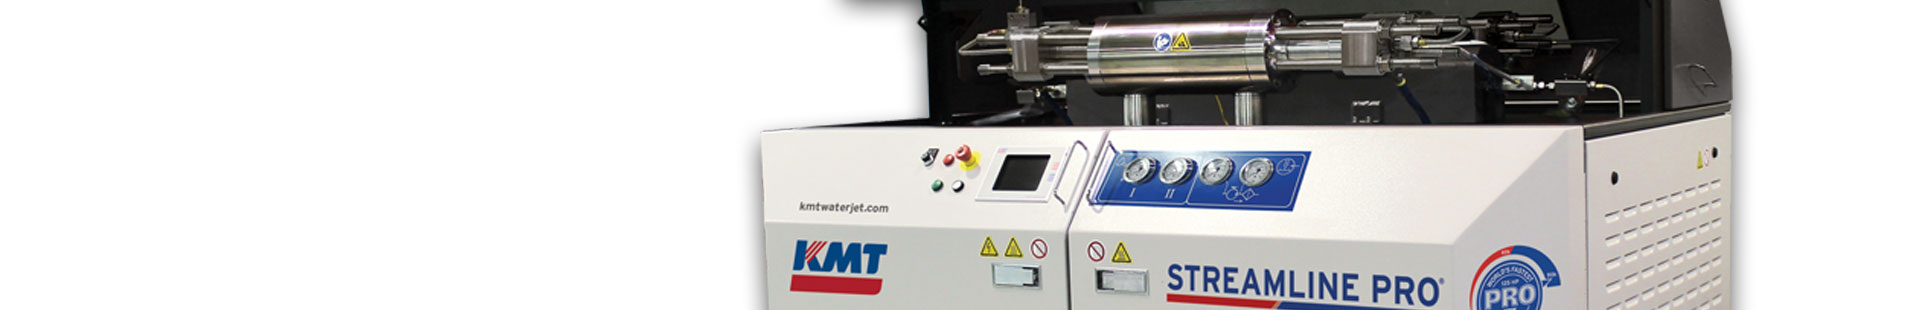 KMT-PRO-90000PSI-125hp-WATERJET-PUMP-BANNER